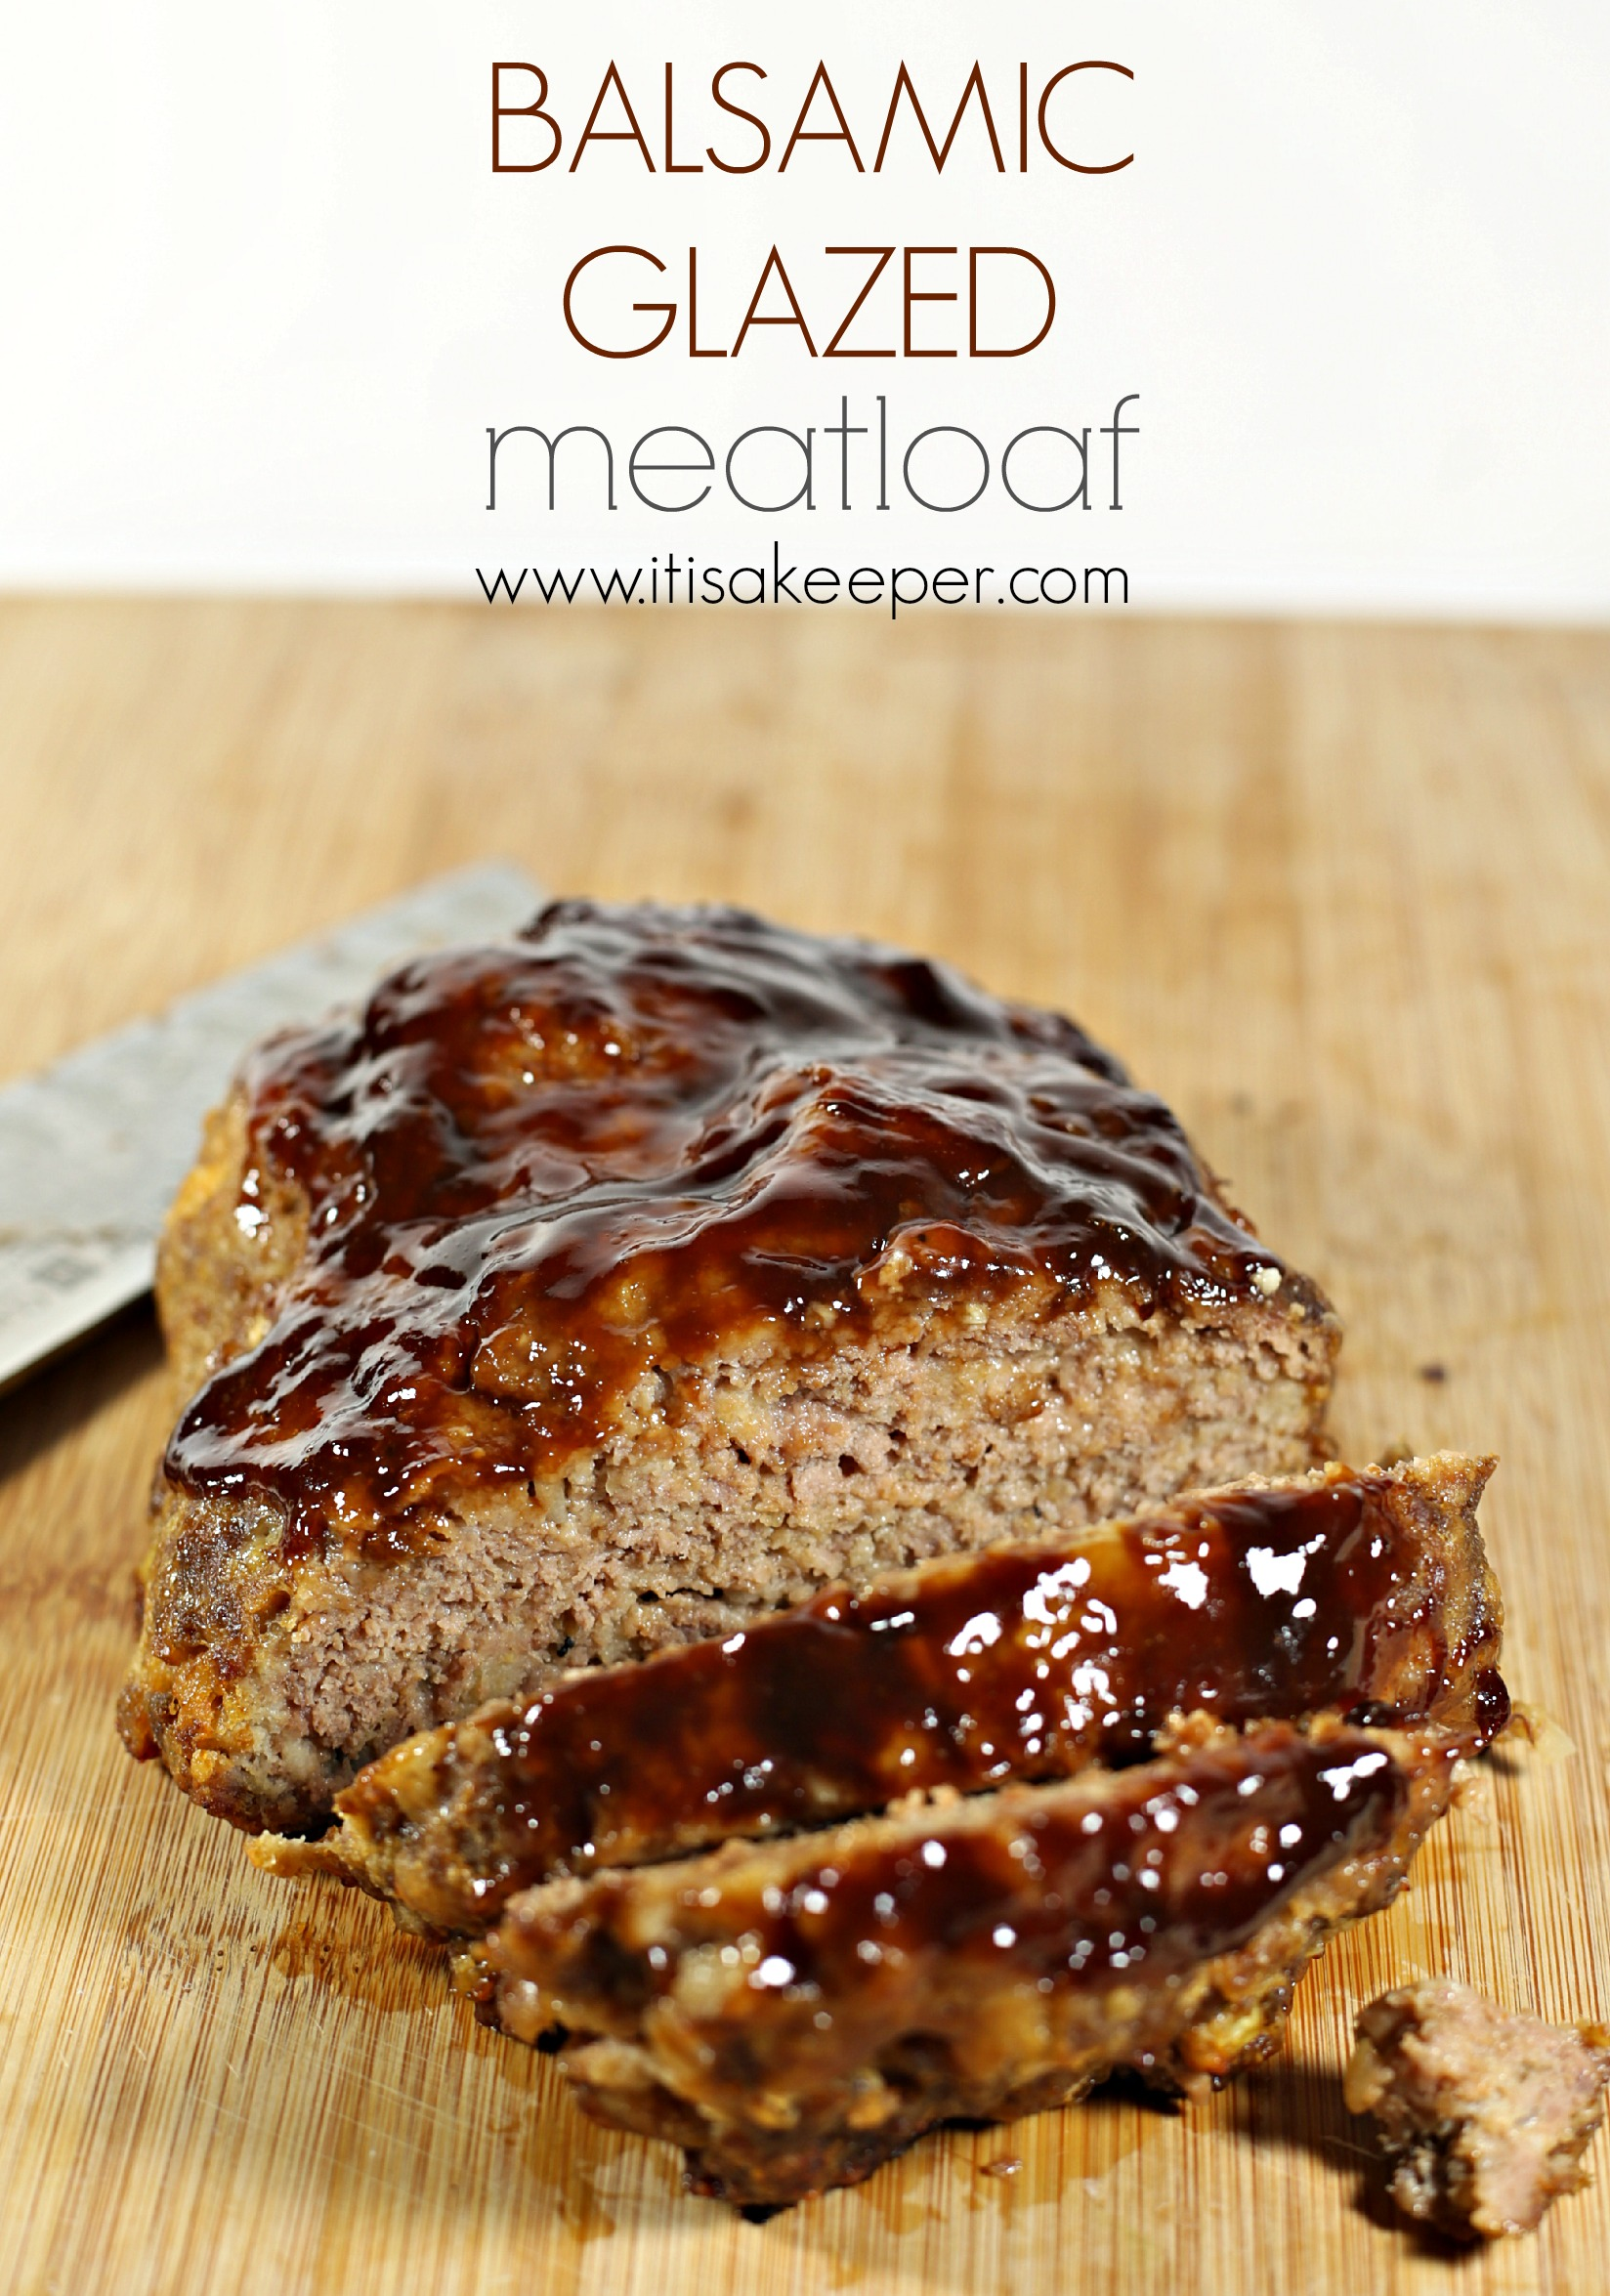 meatloaf glaze recipes yummly this is a great alternative to meatloaf ...